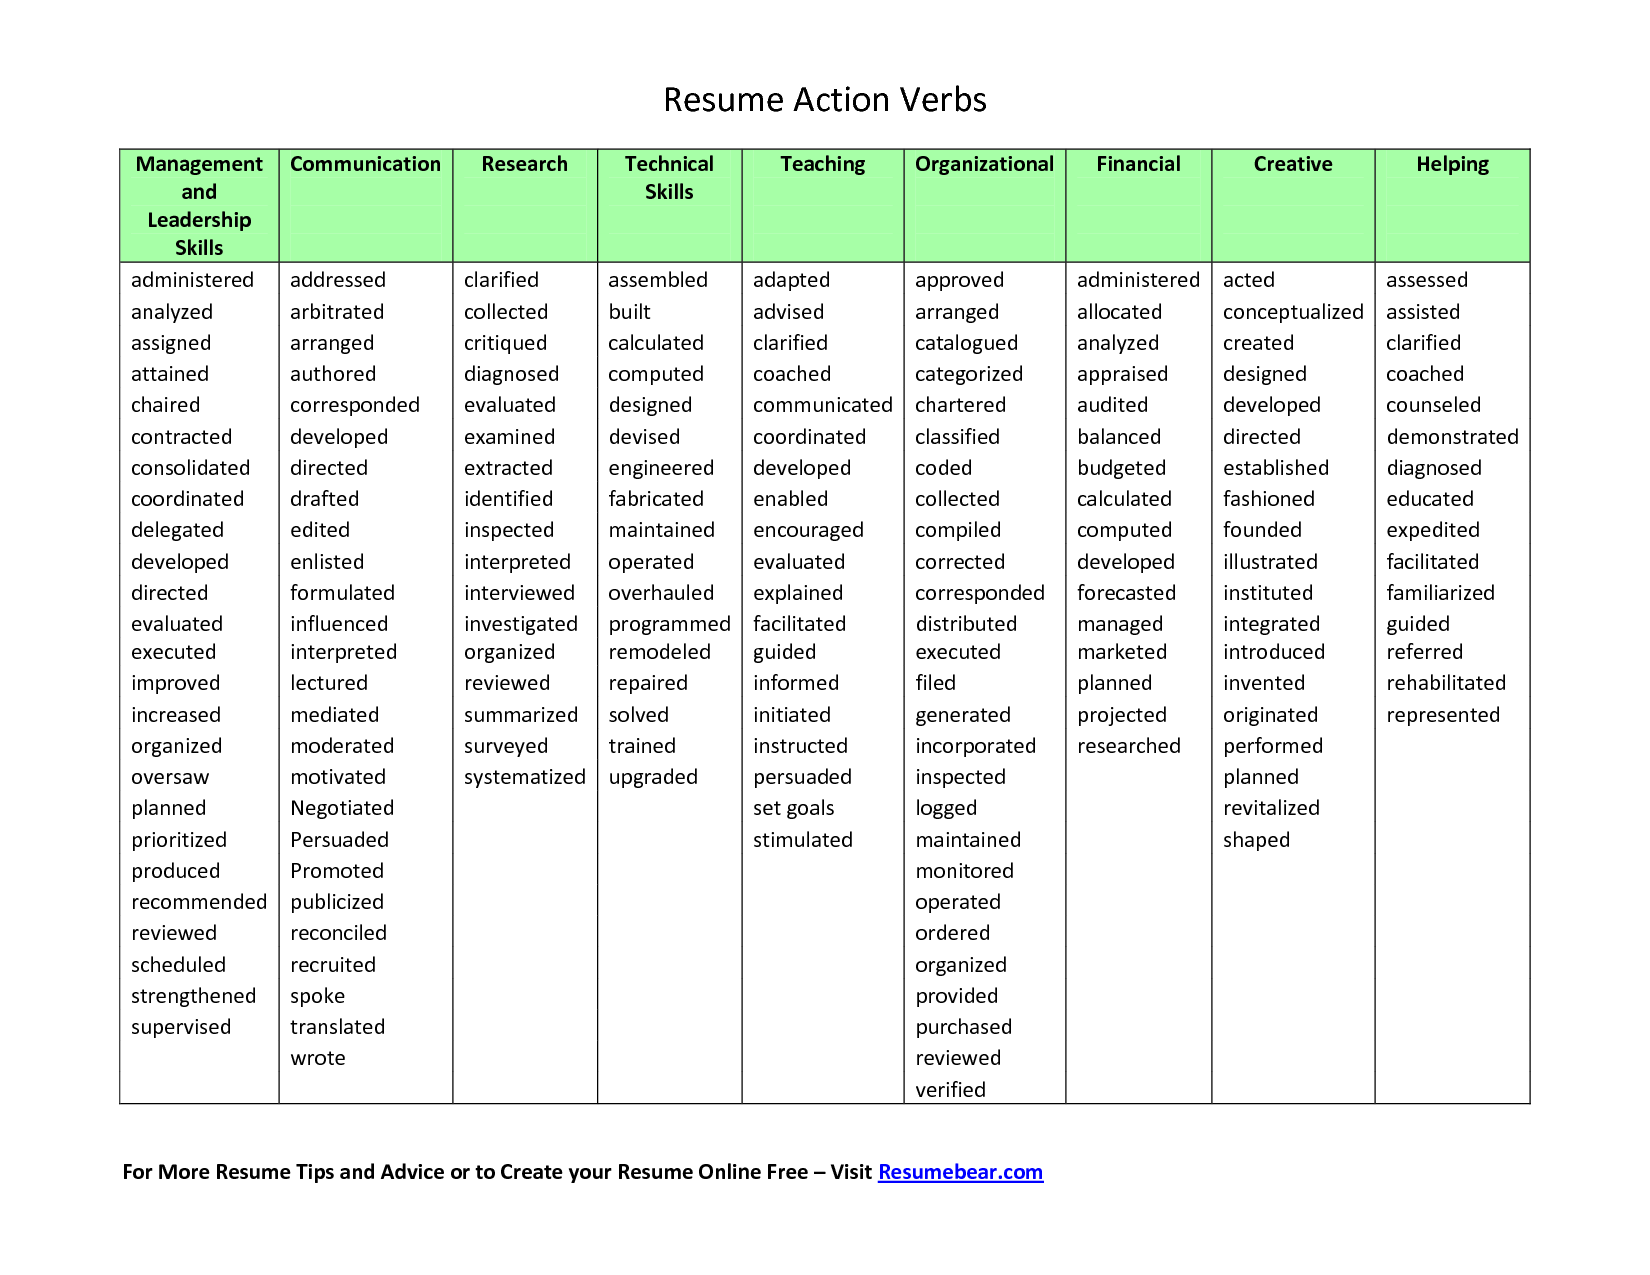 Action Verbs For Resumes And Cover Letters